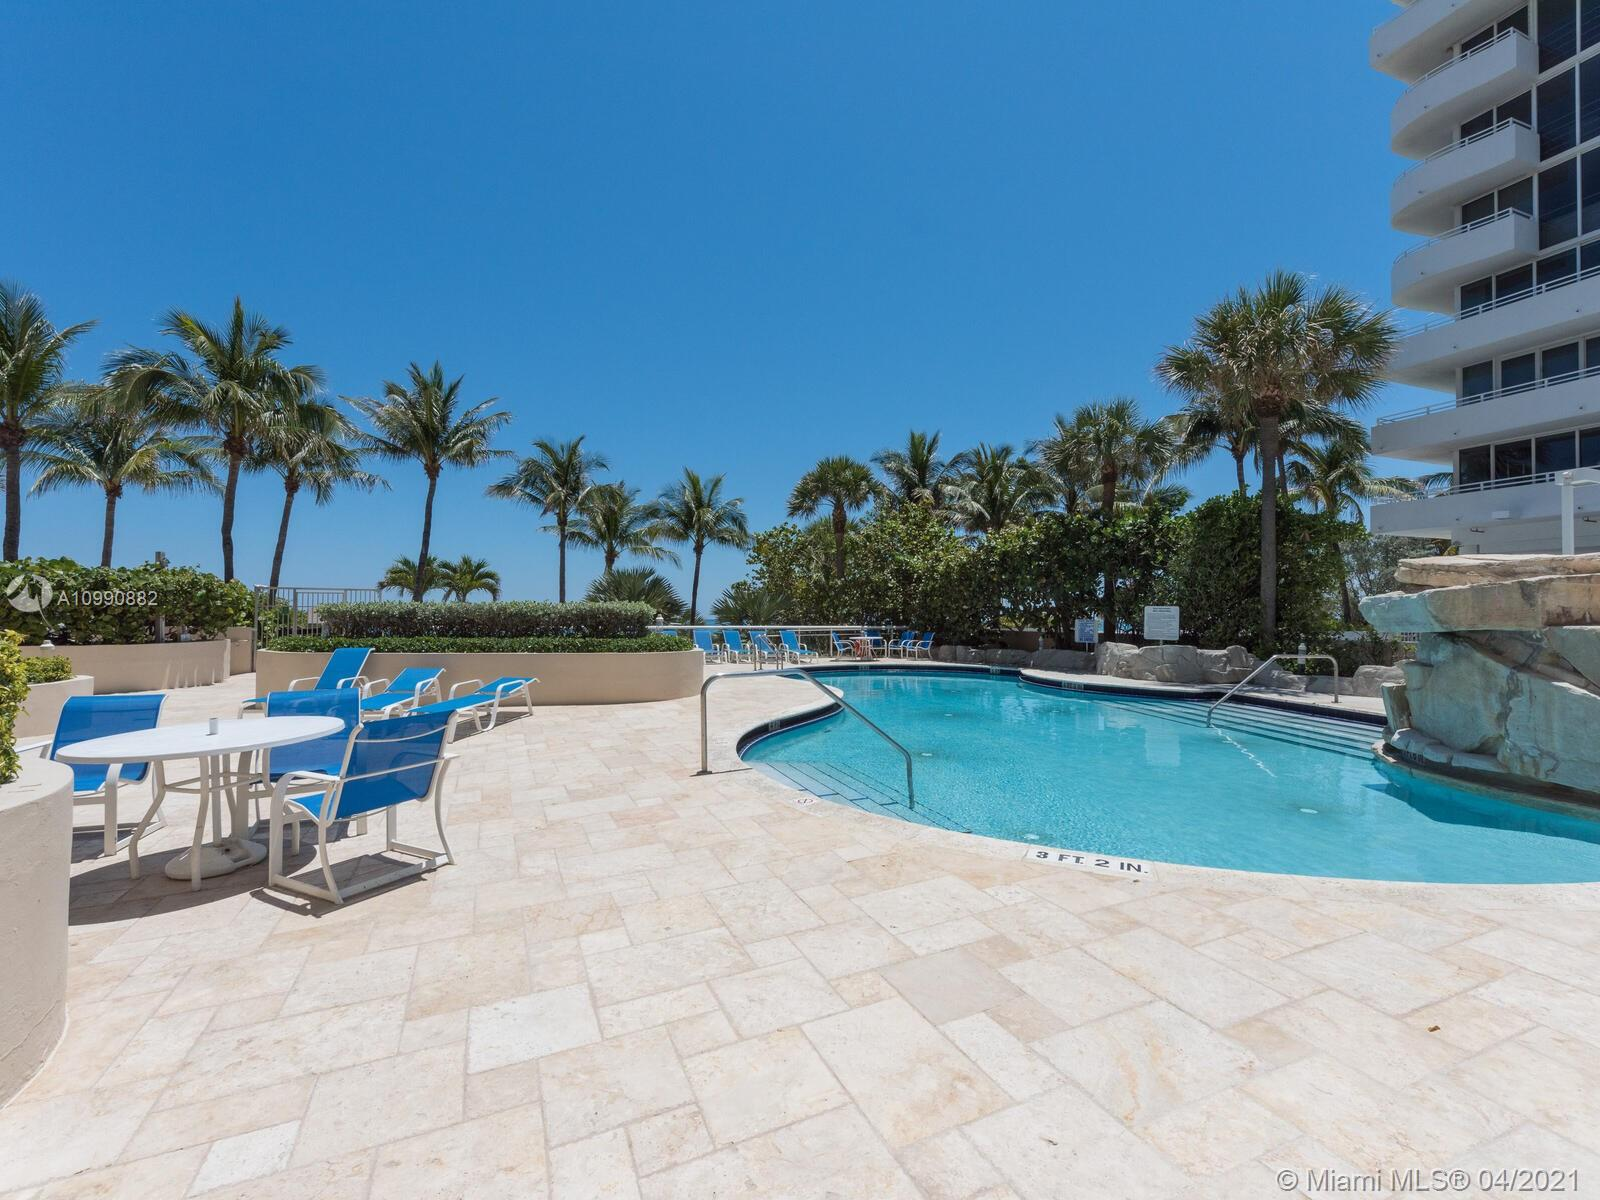 Photo of 8925 Collins Ave #2H, Surfside, Florida, 33154 - Pool and deck being renovated. Detailed list with renderings in MLS Attachments.